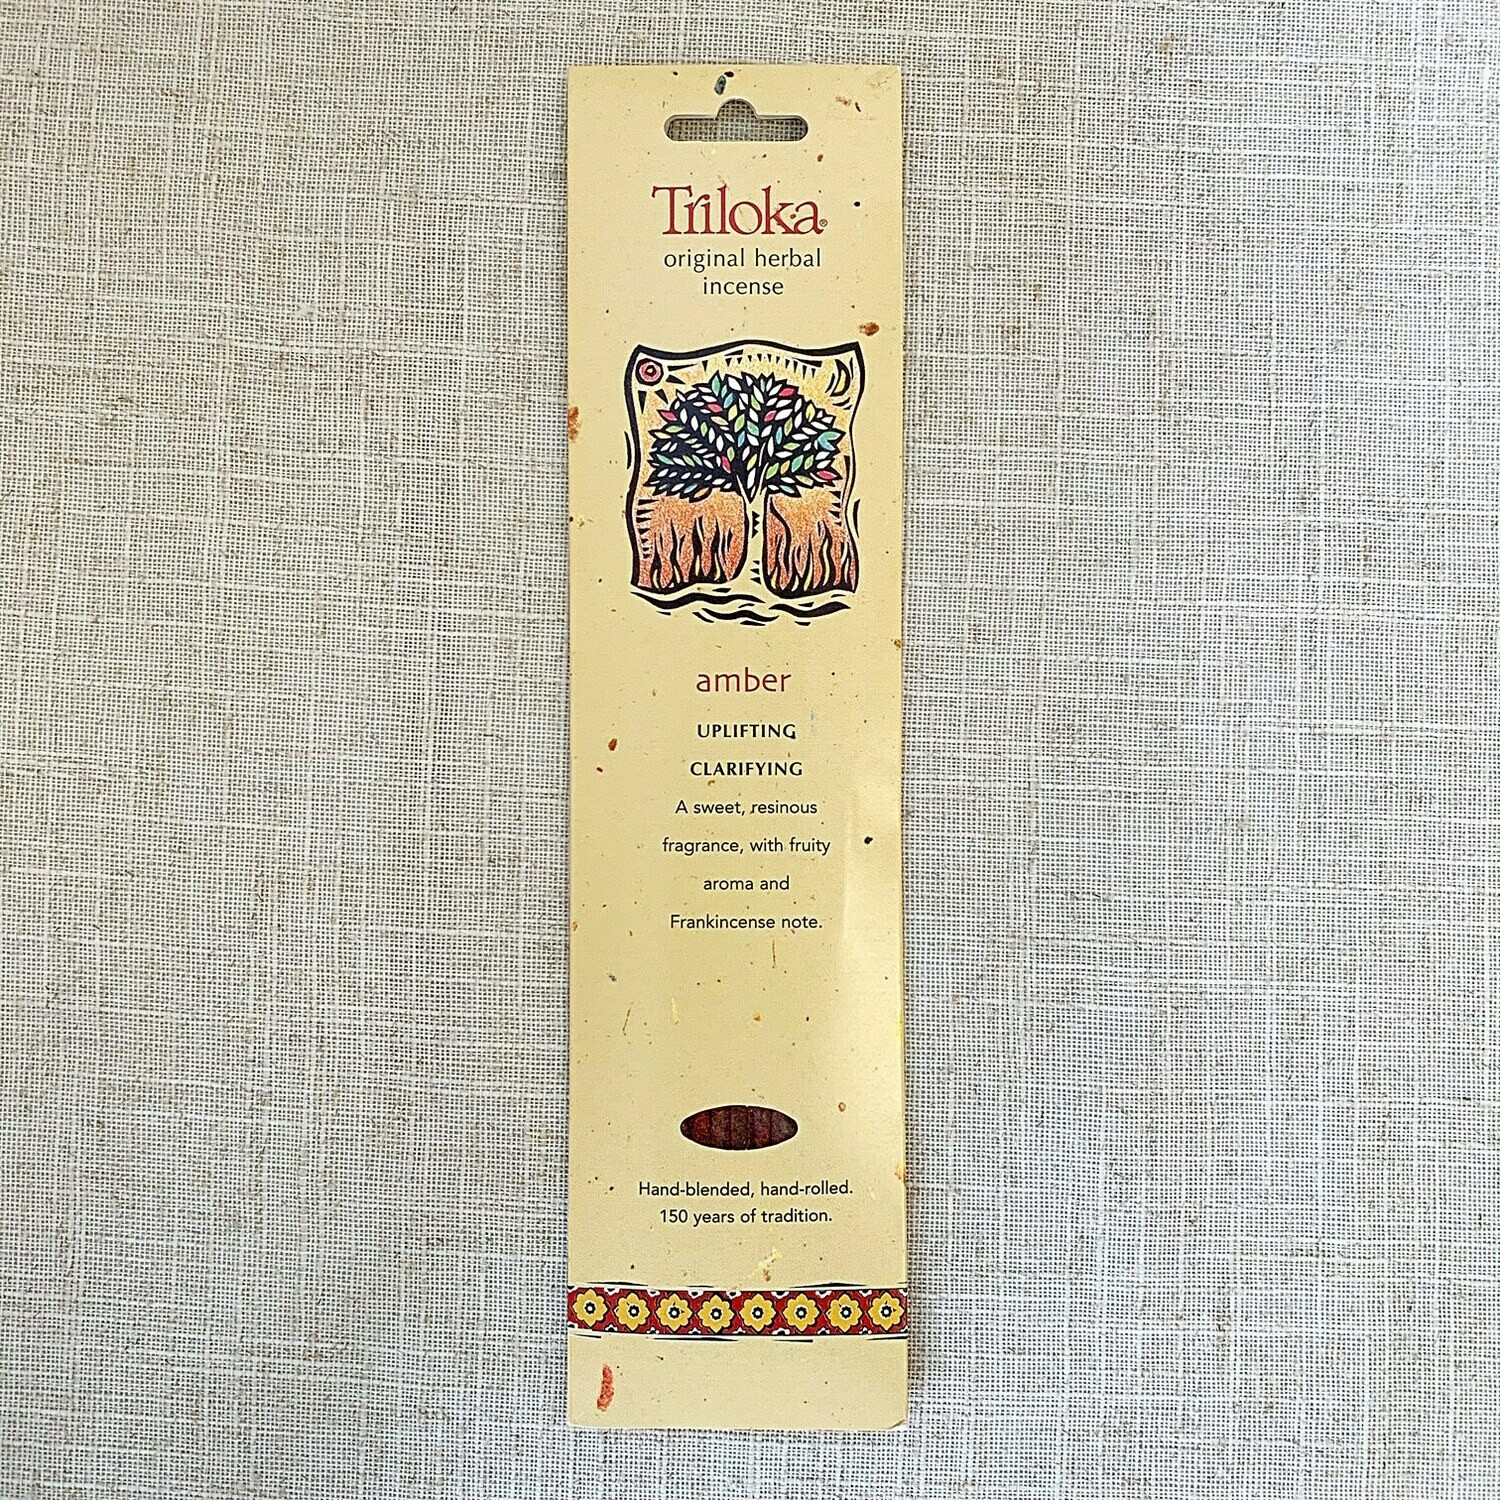 Amber Triloka® Herbal Incense